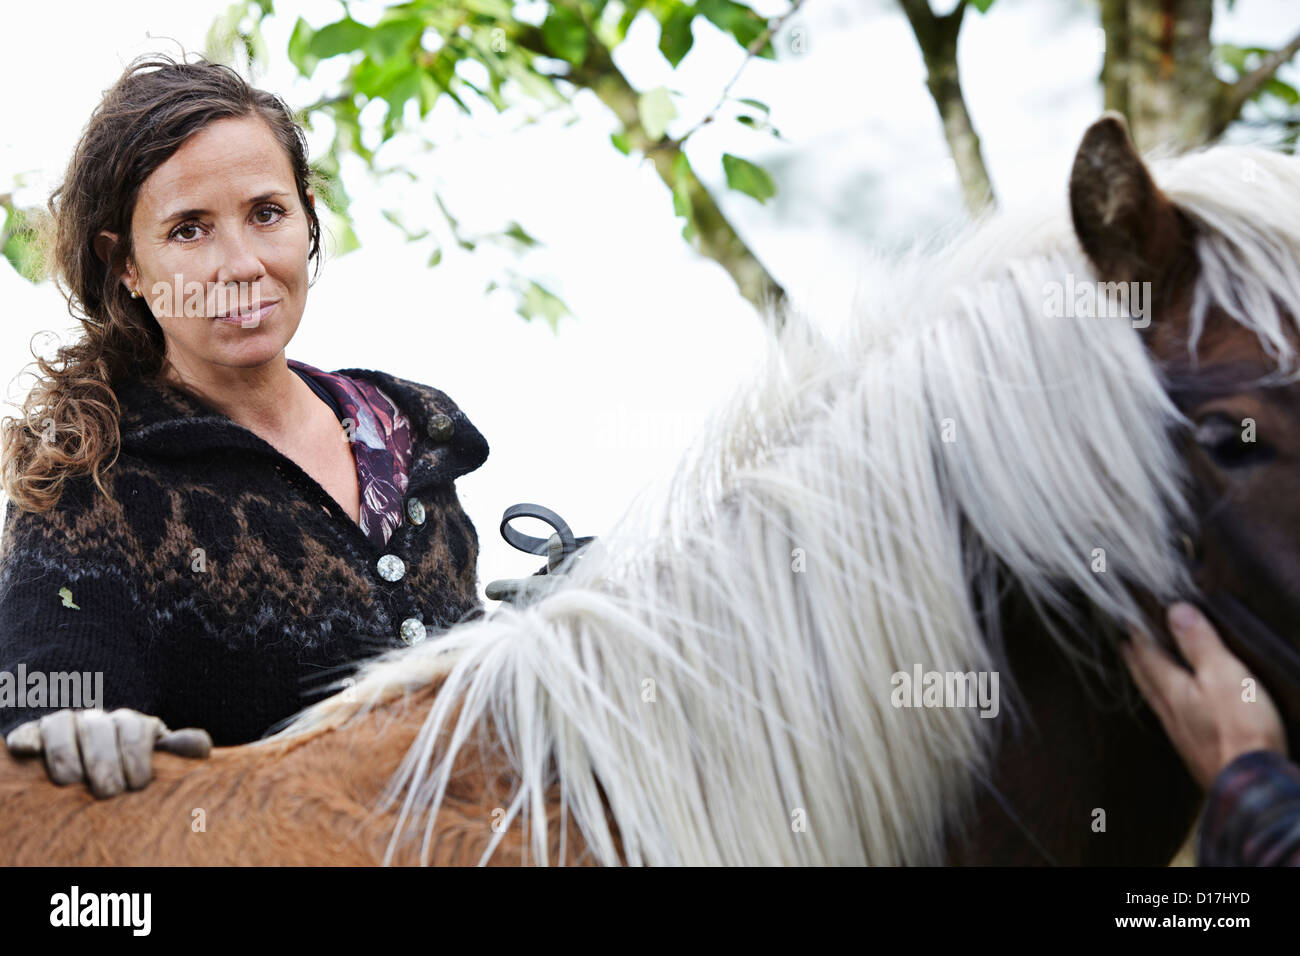 Woman petting horse outdoors - Stock Image